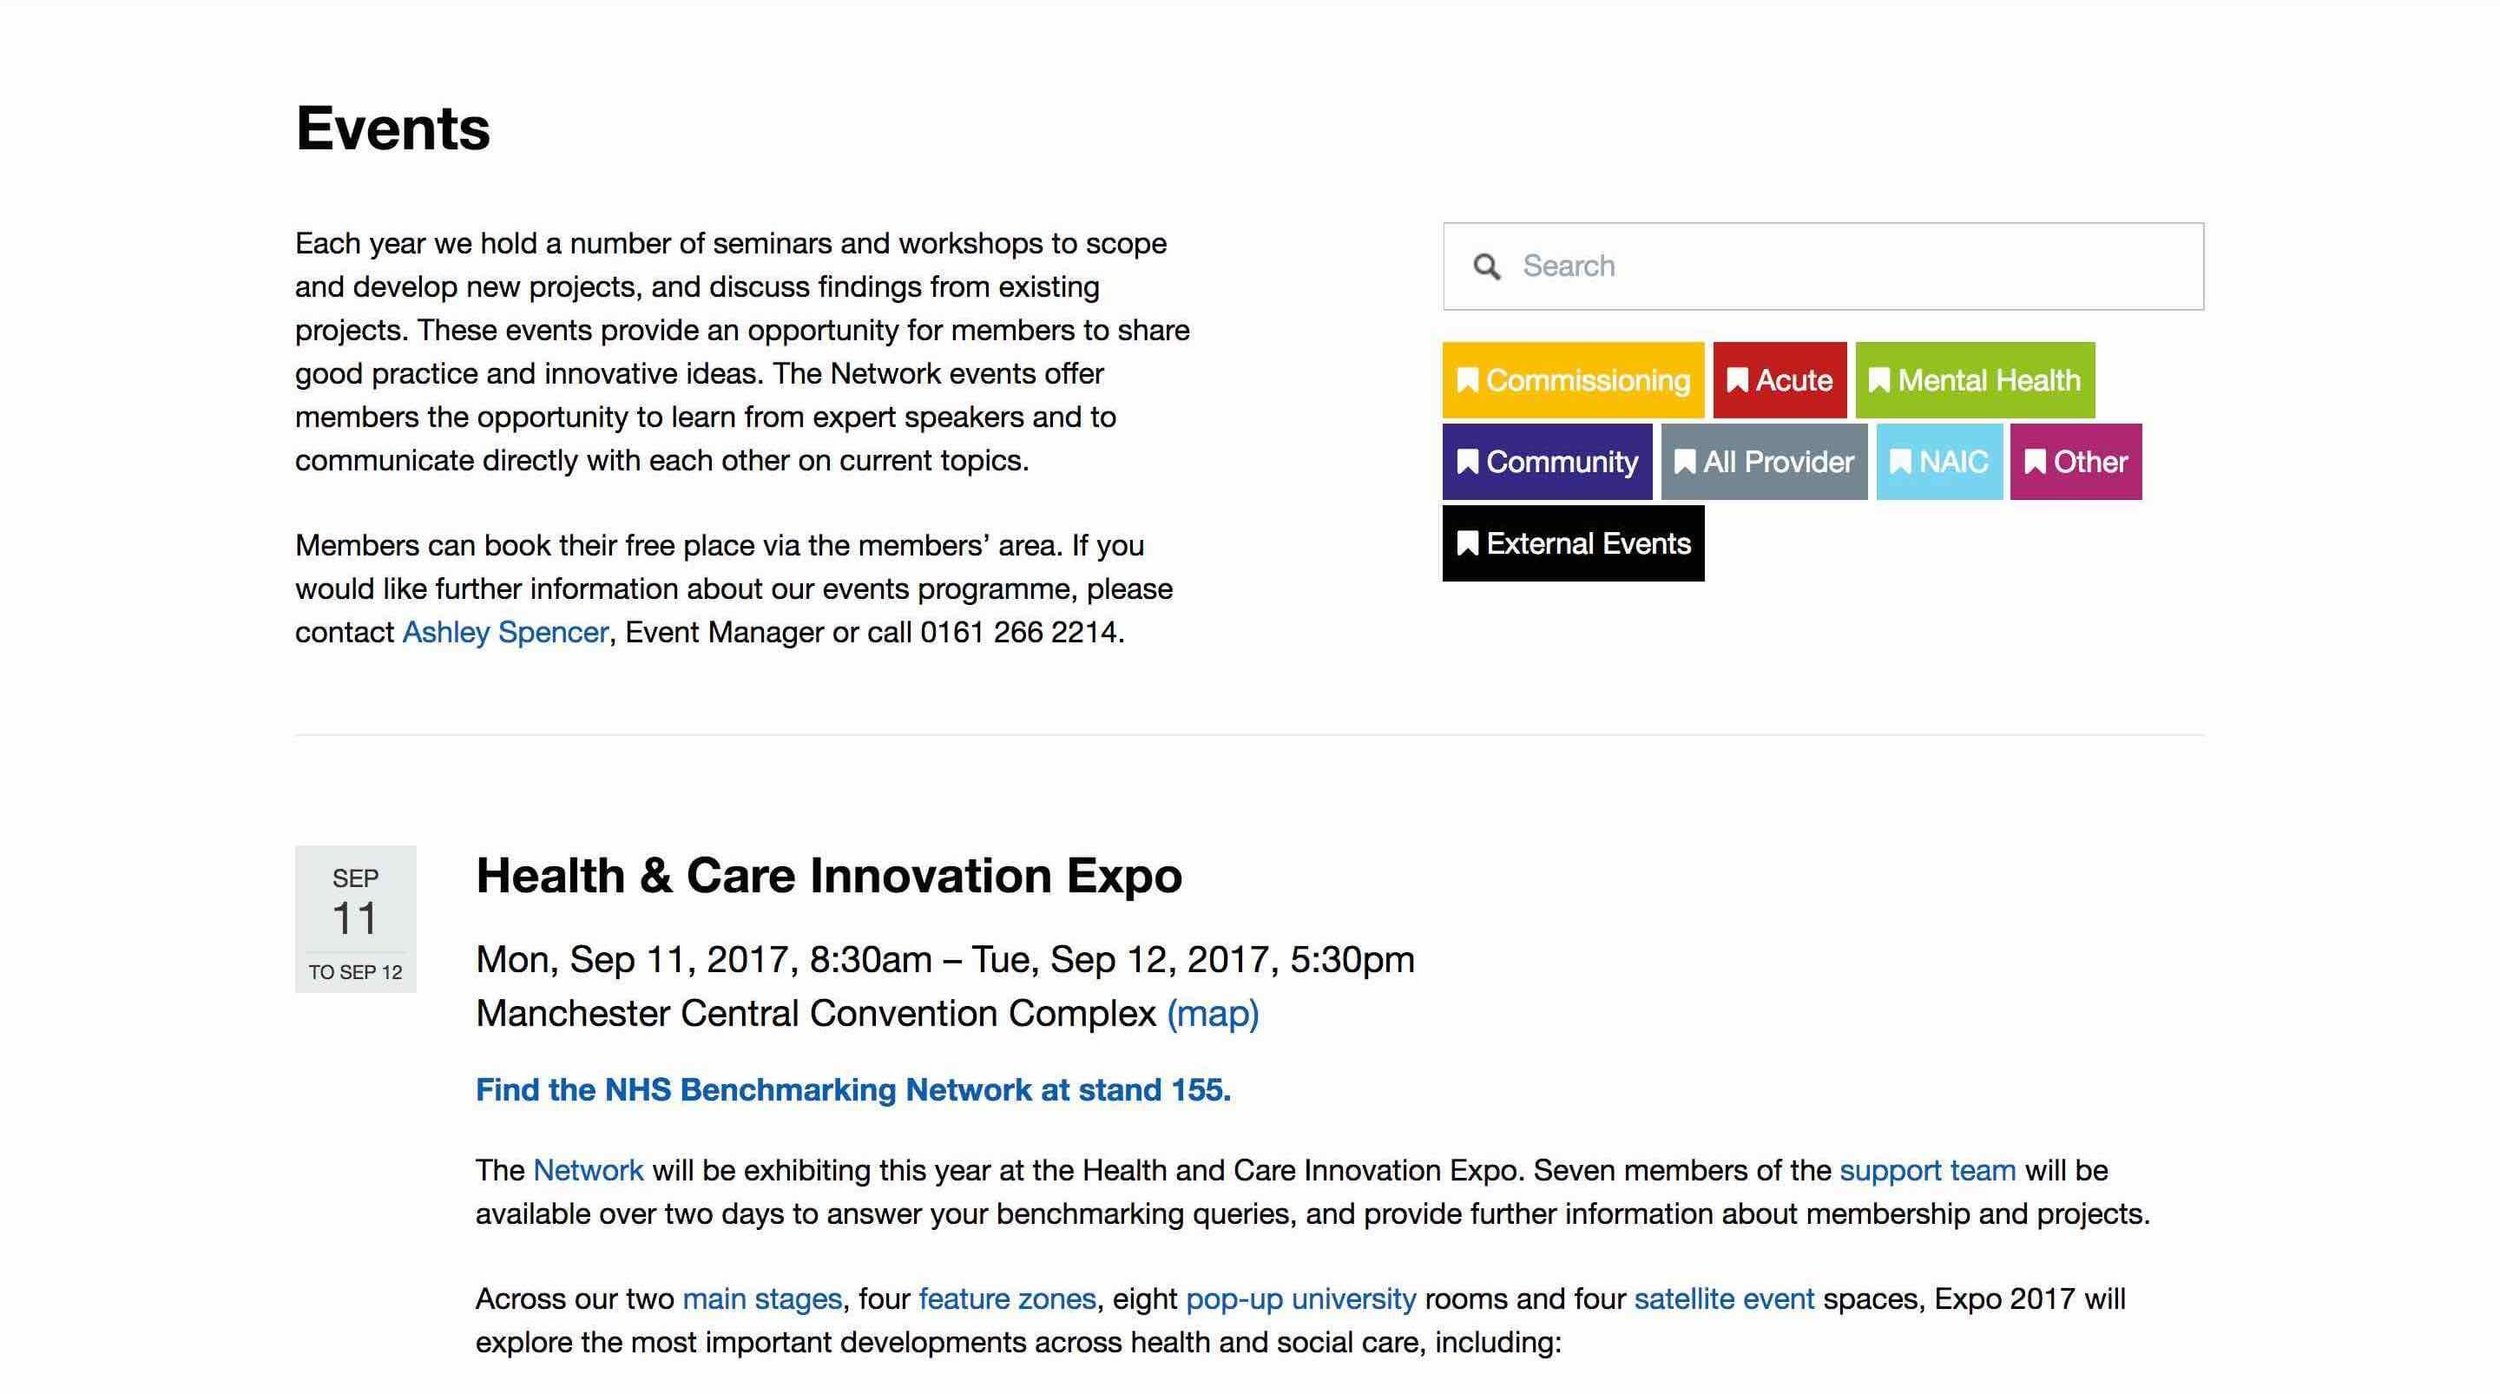 NHS Benchmarking Network: Events Page